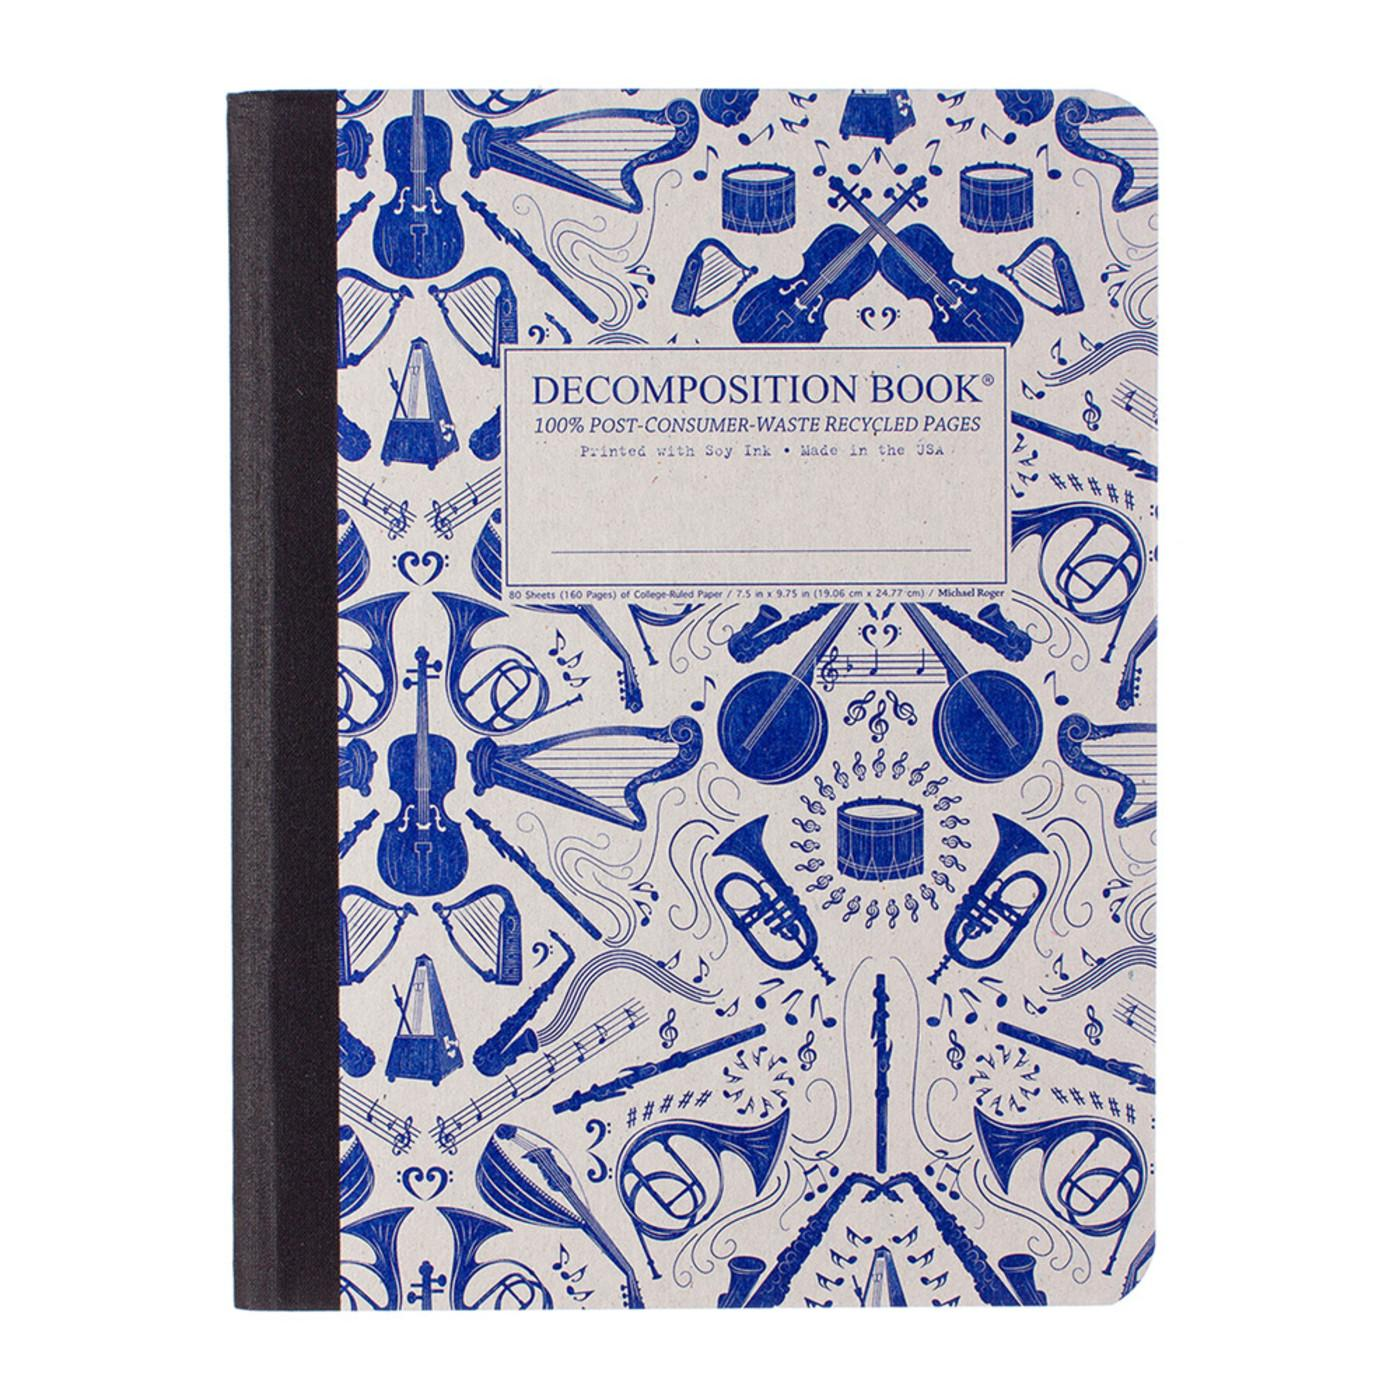 Decomposition Book Acoustic College Ruled Notebook